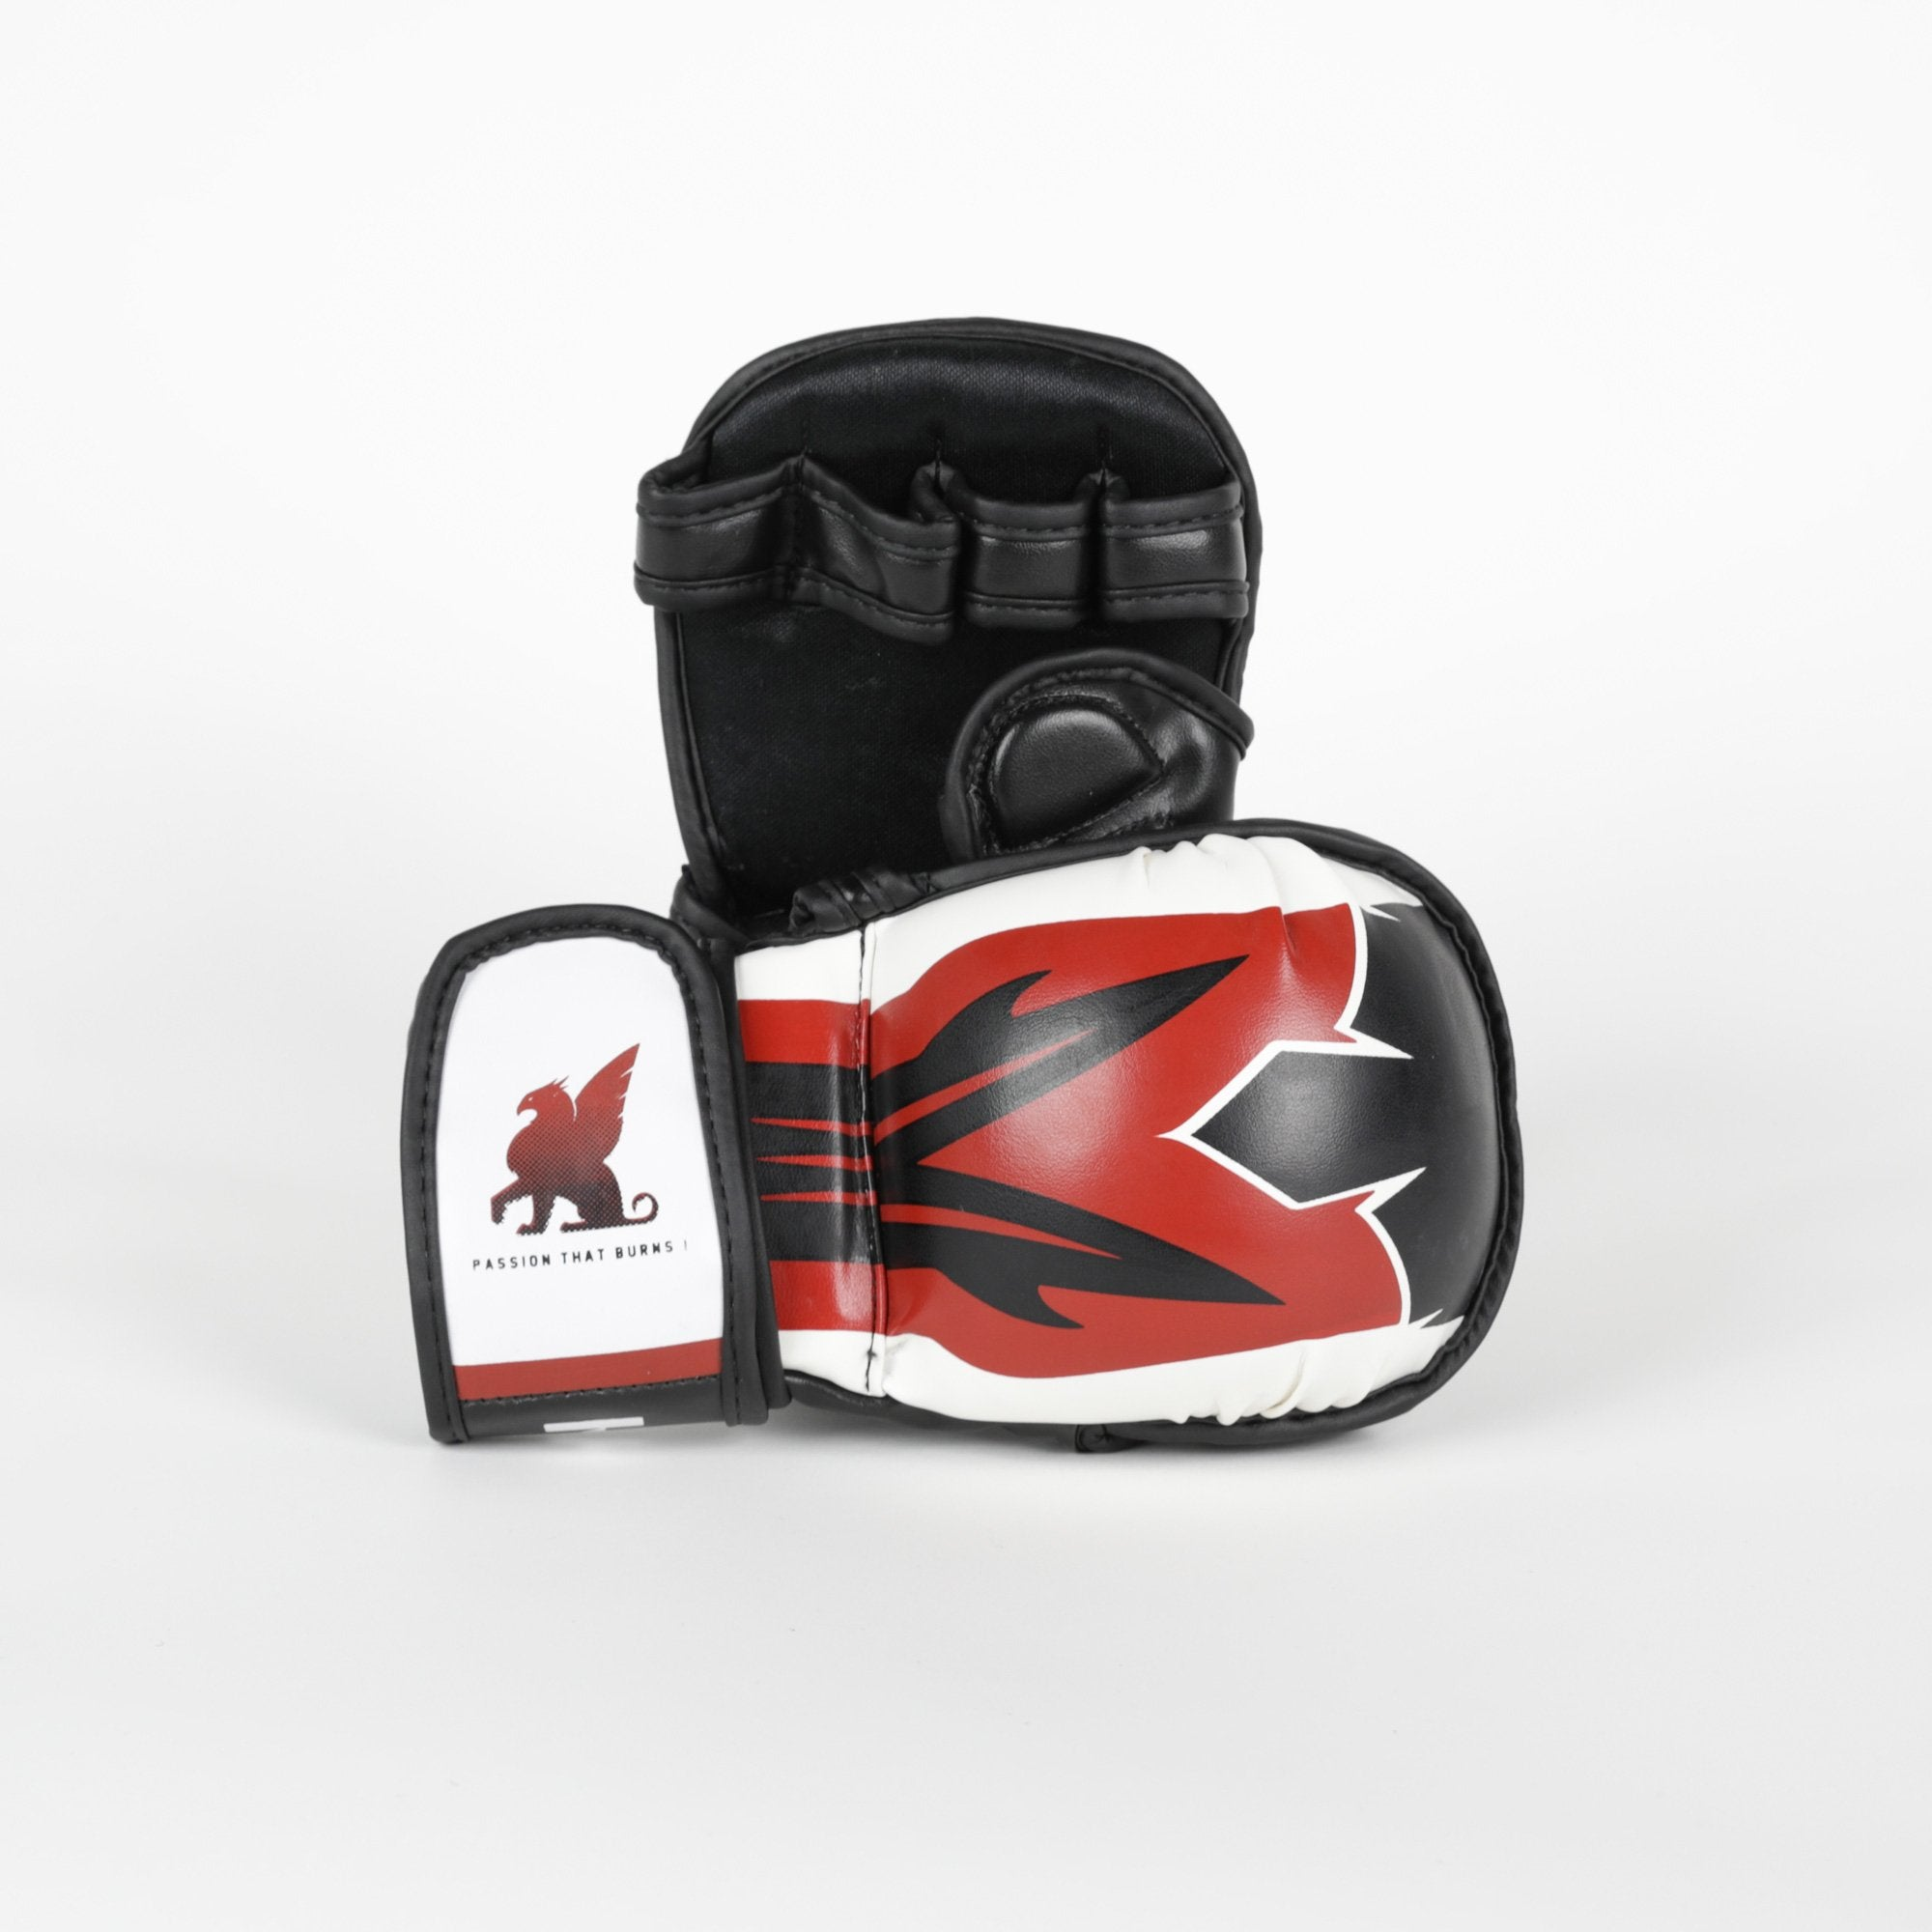 Habrok MMA GLOVES S / BLACK X 2.0 | SPARRING GLOVES | HABROK X 2.0 | SPARRING GLOVES | MMA | MUAY THAI